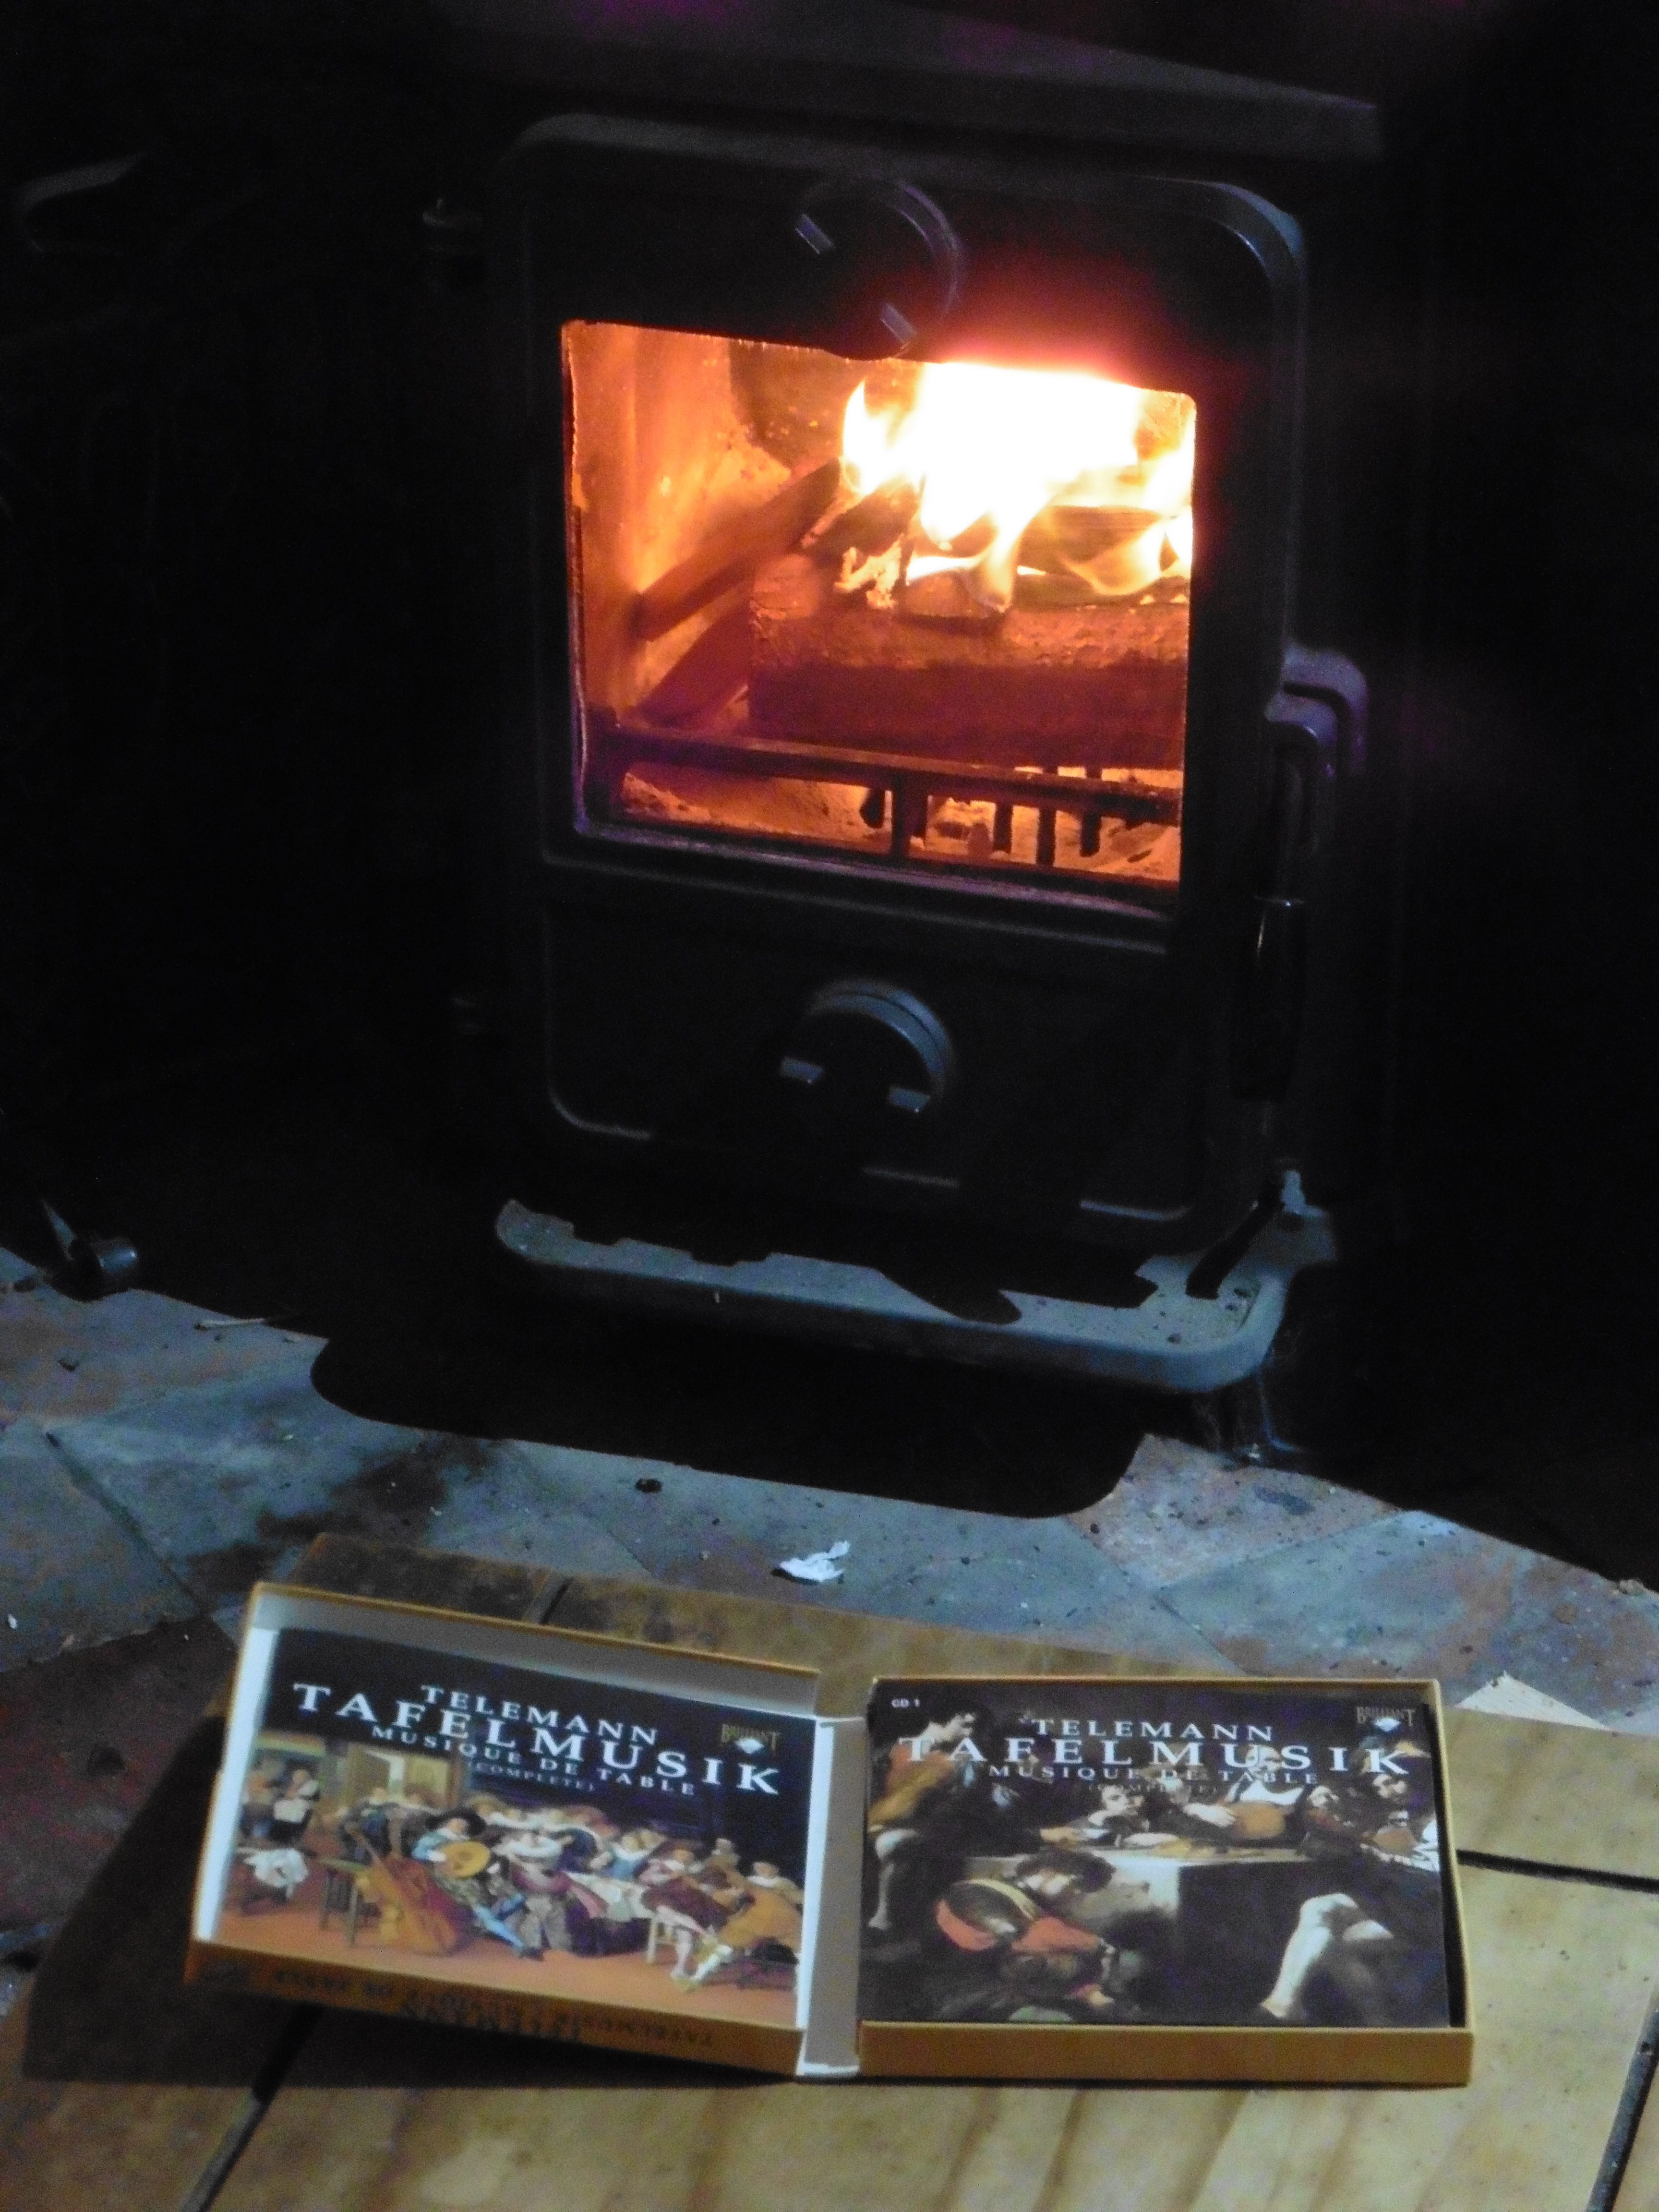 fire, CD cover in foreground